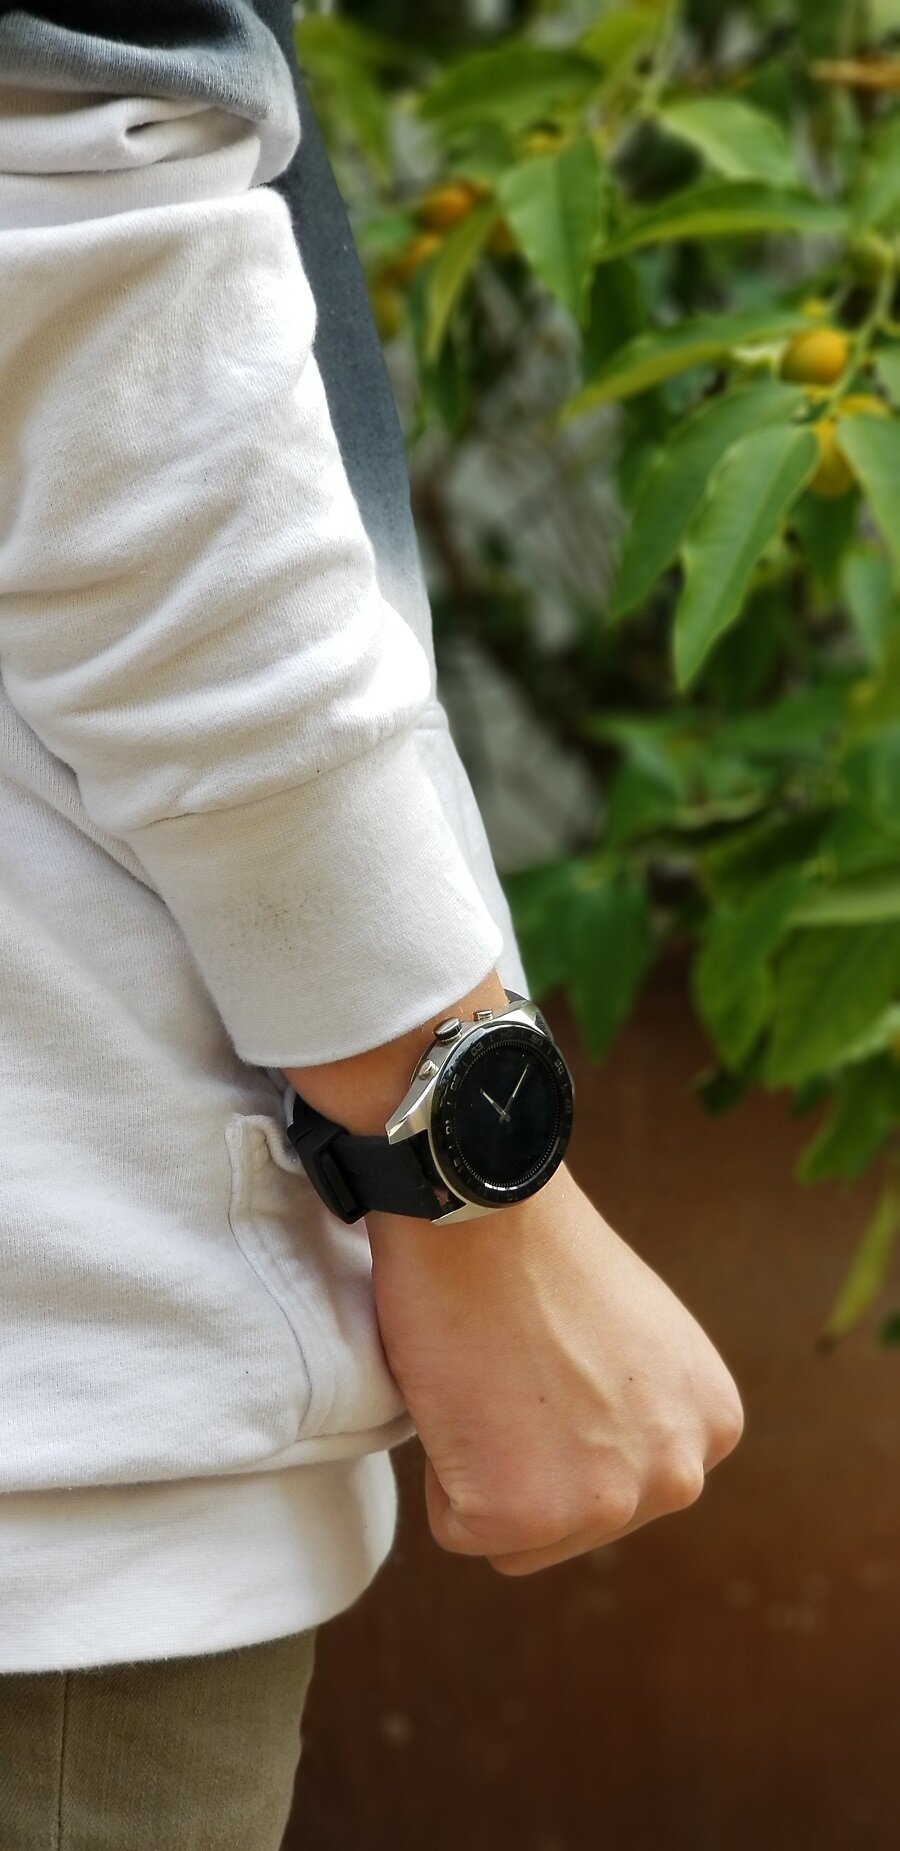 The LG Watch W7 Smartwatch is powered by Wear OS and blends the best of both worlds, with its mechanical hands and 1.2-inch round touchscreen display. LG Smartwatches | Best Tech | LG Hybrid Smartwatch | Wear OS Watches | Best Buy Gift Guide